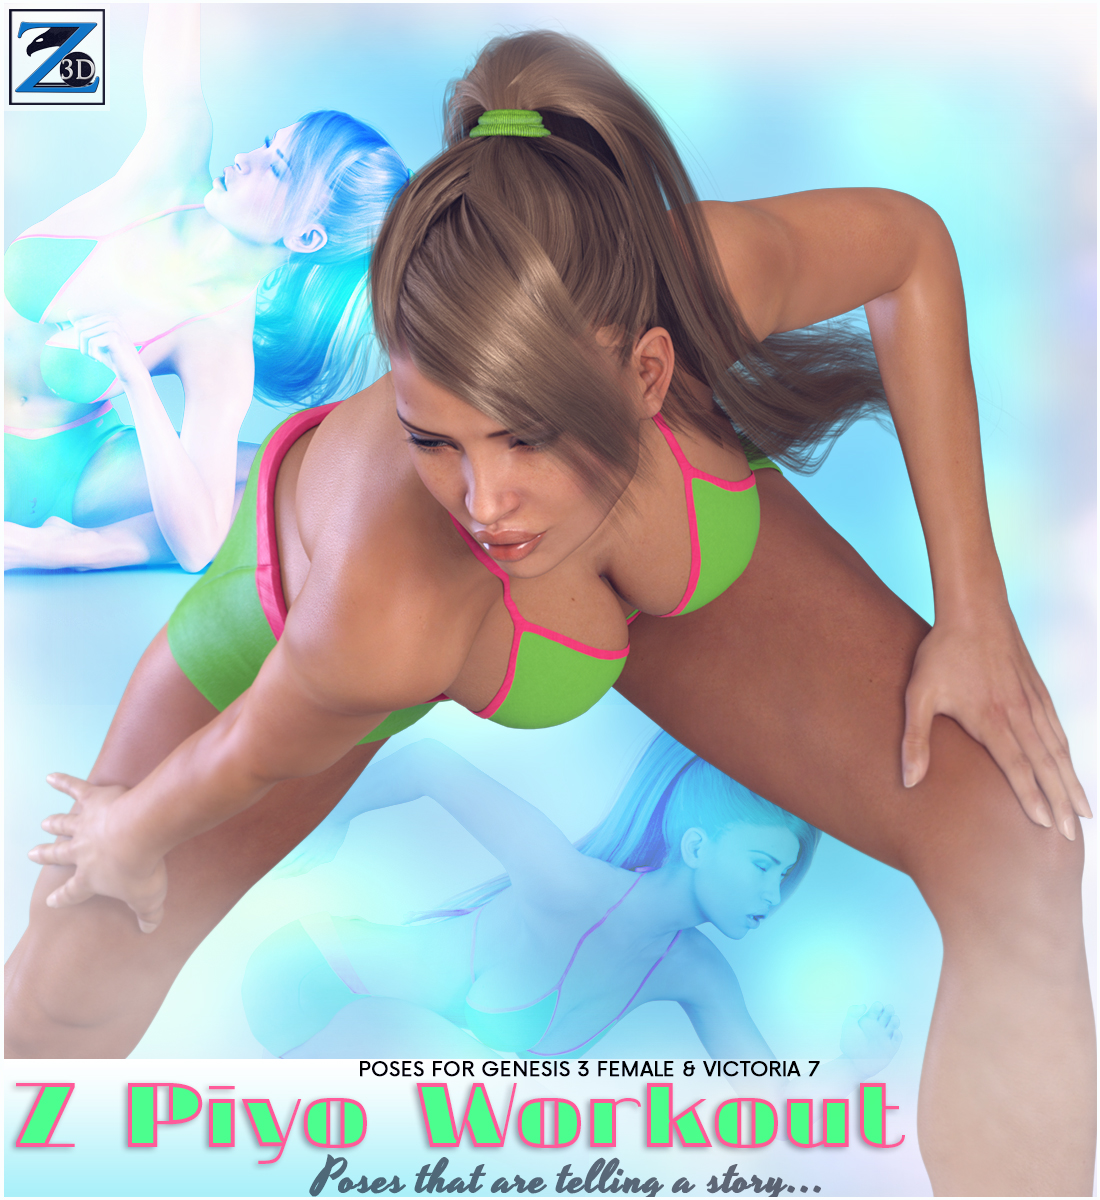 Z Piyo Workout - Poses for the Genesis 3 Females